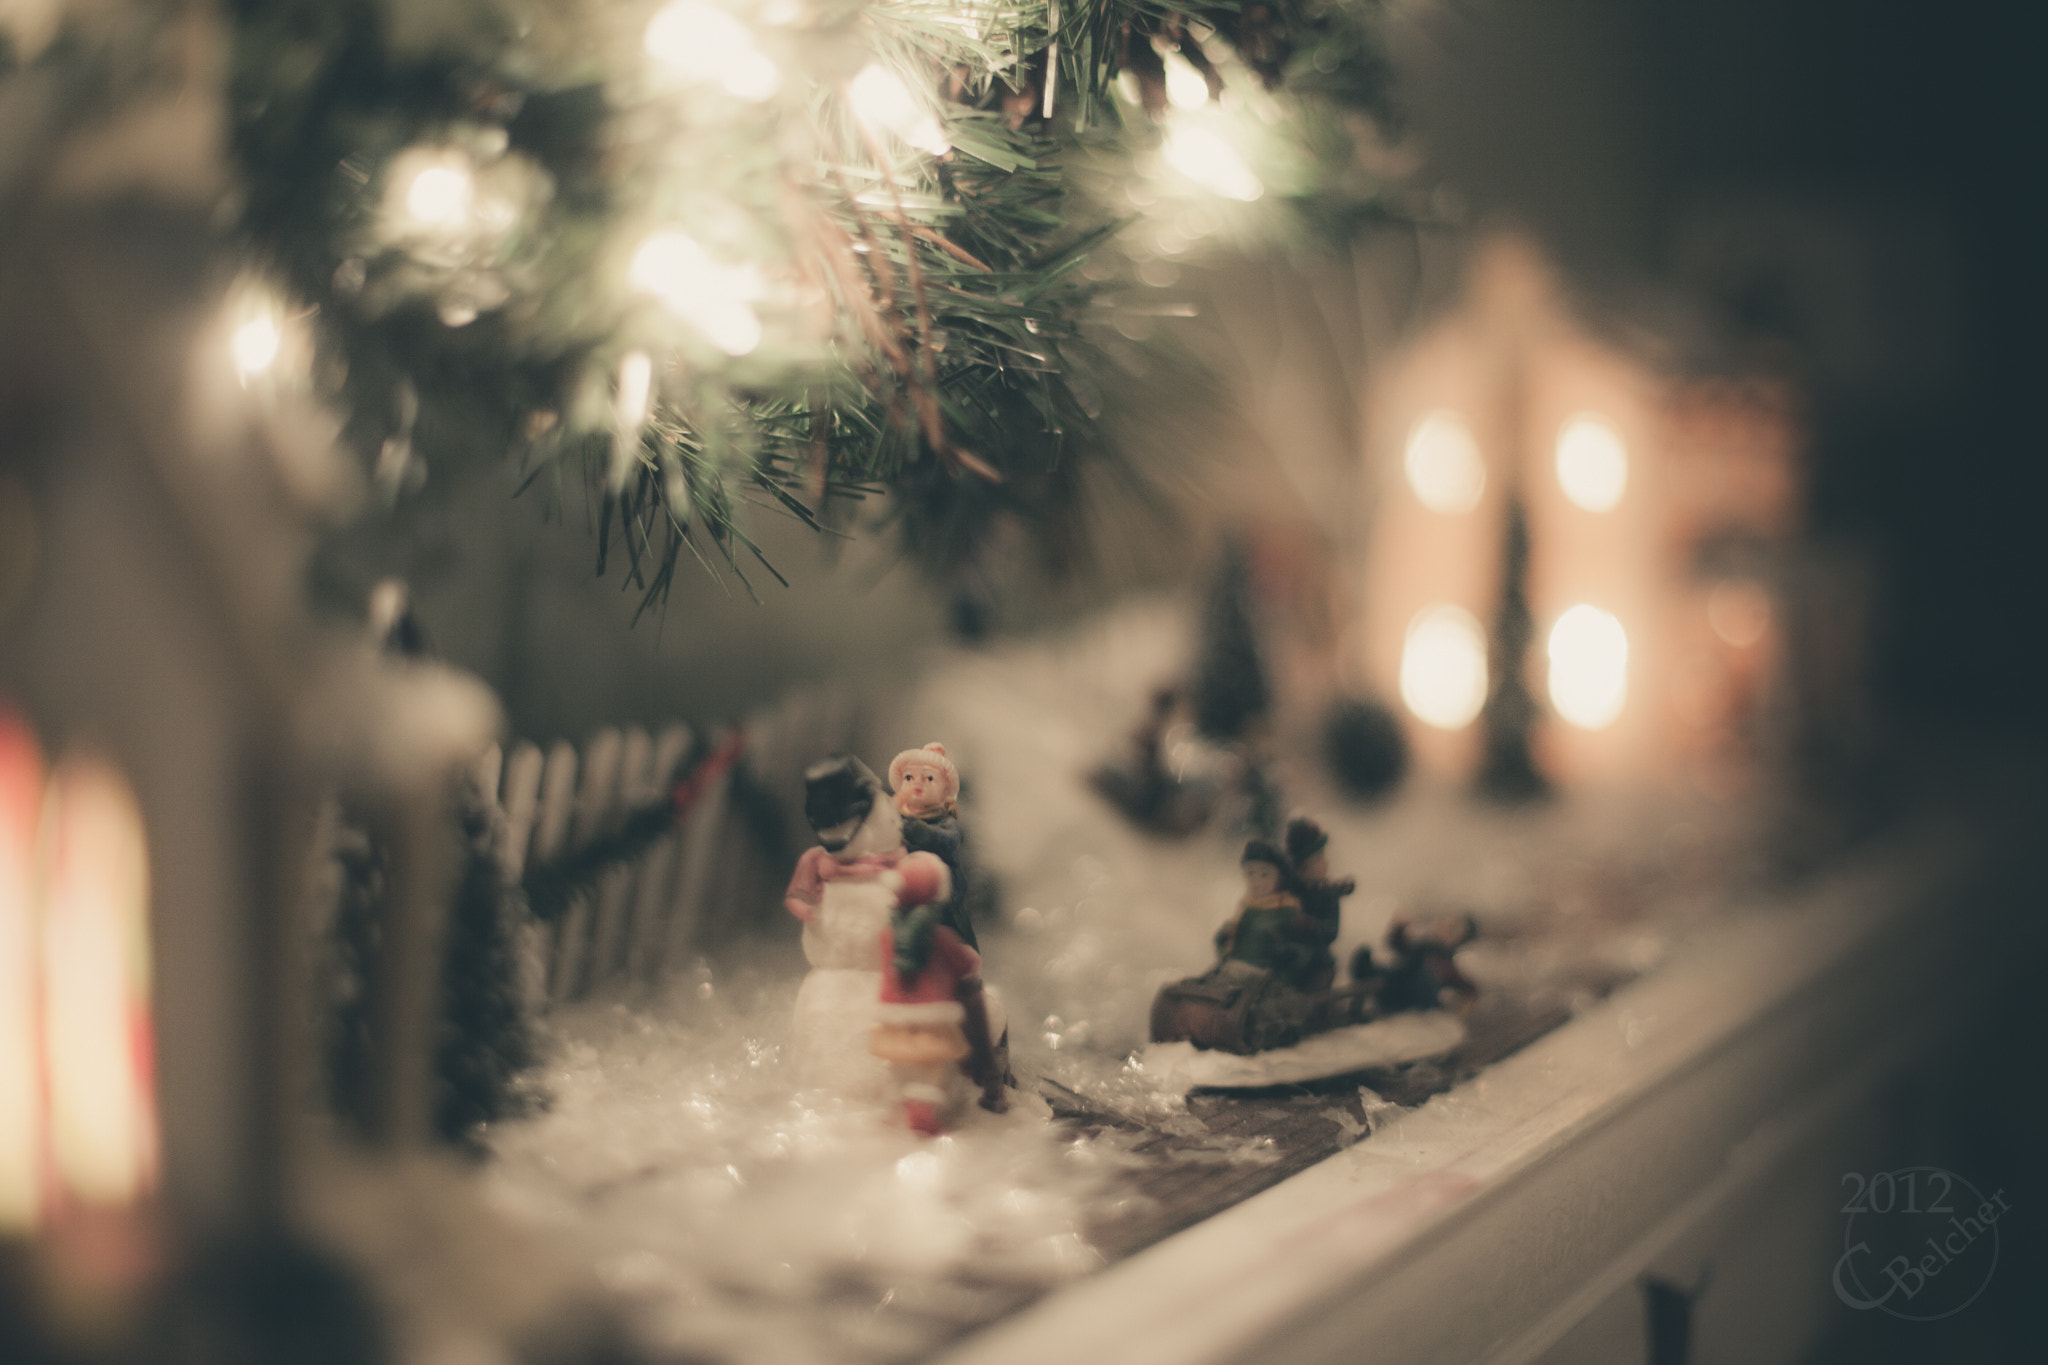 Photograph Christmas Mantel, Snowman by Chris Belcher on 500px